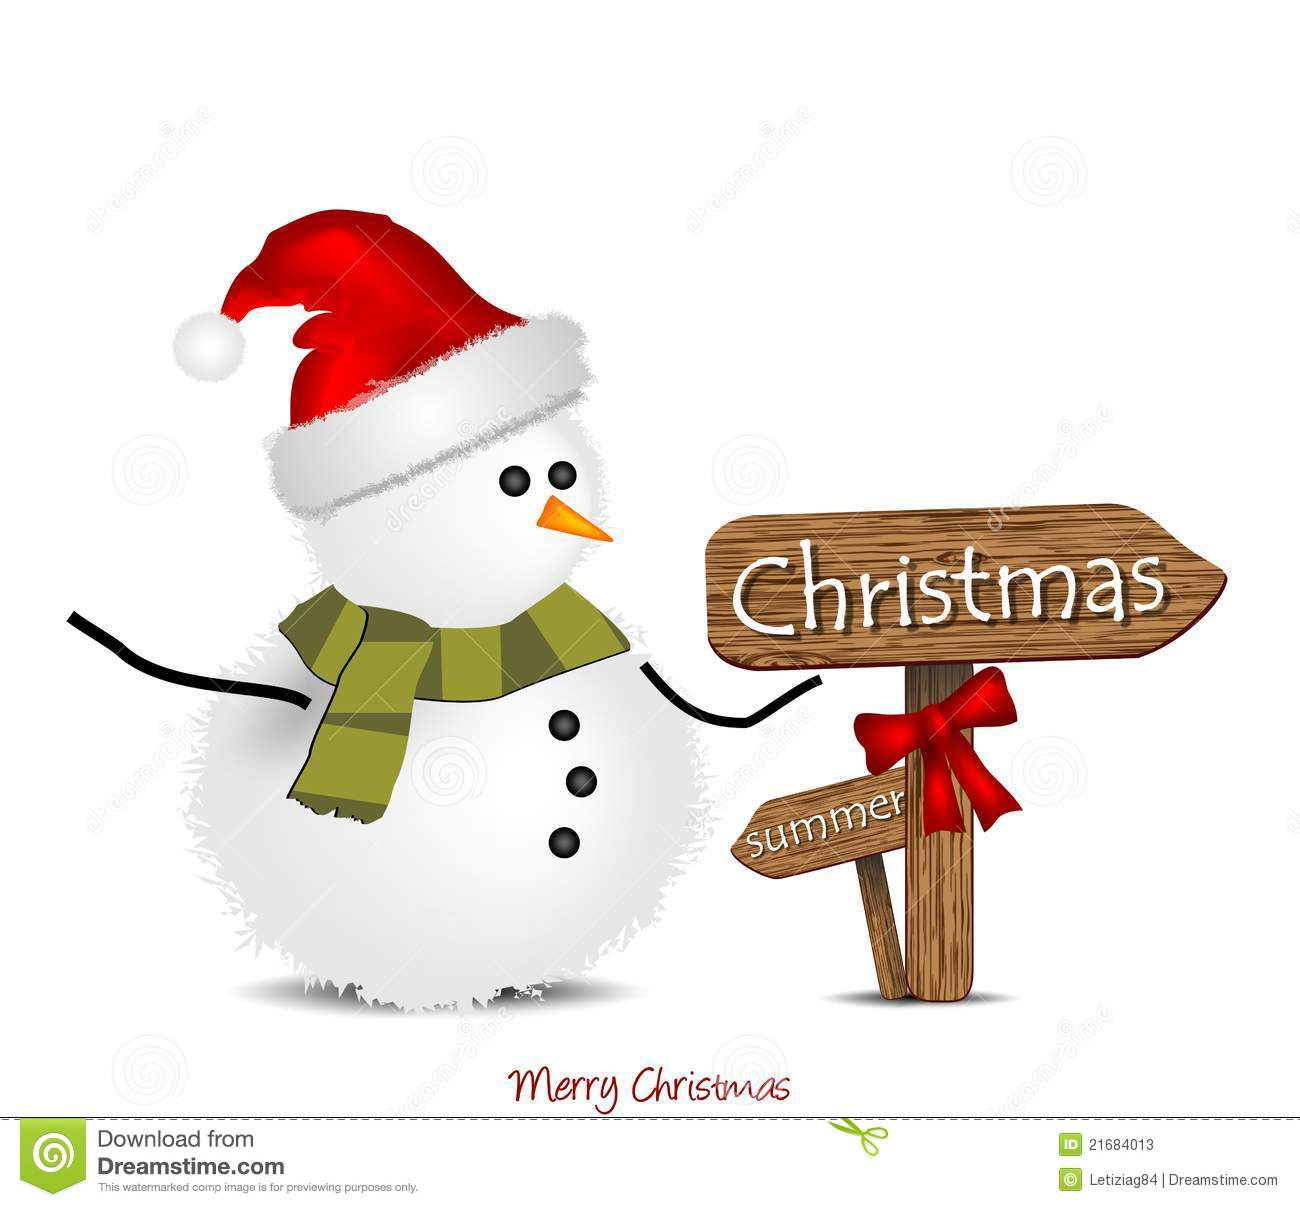 Christmas Arrow Signs.Illustration With Christmas Snowman And Signage Stock